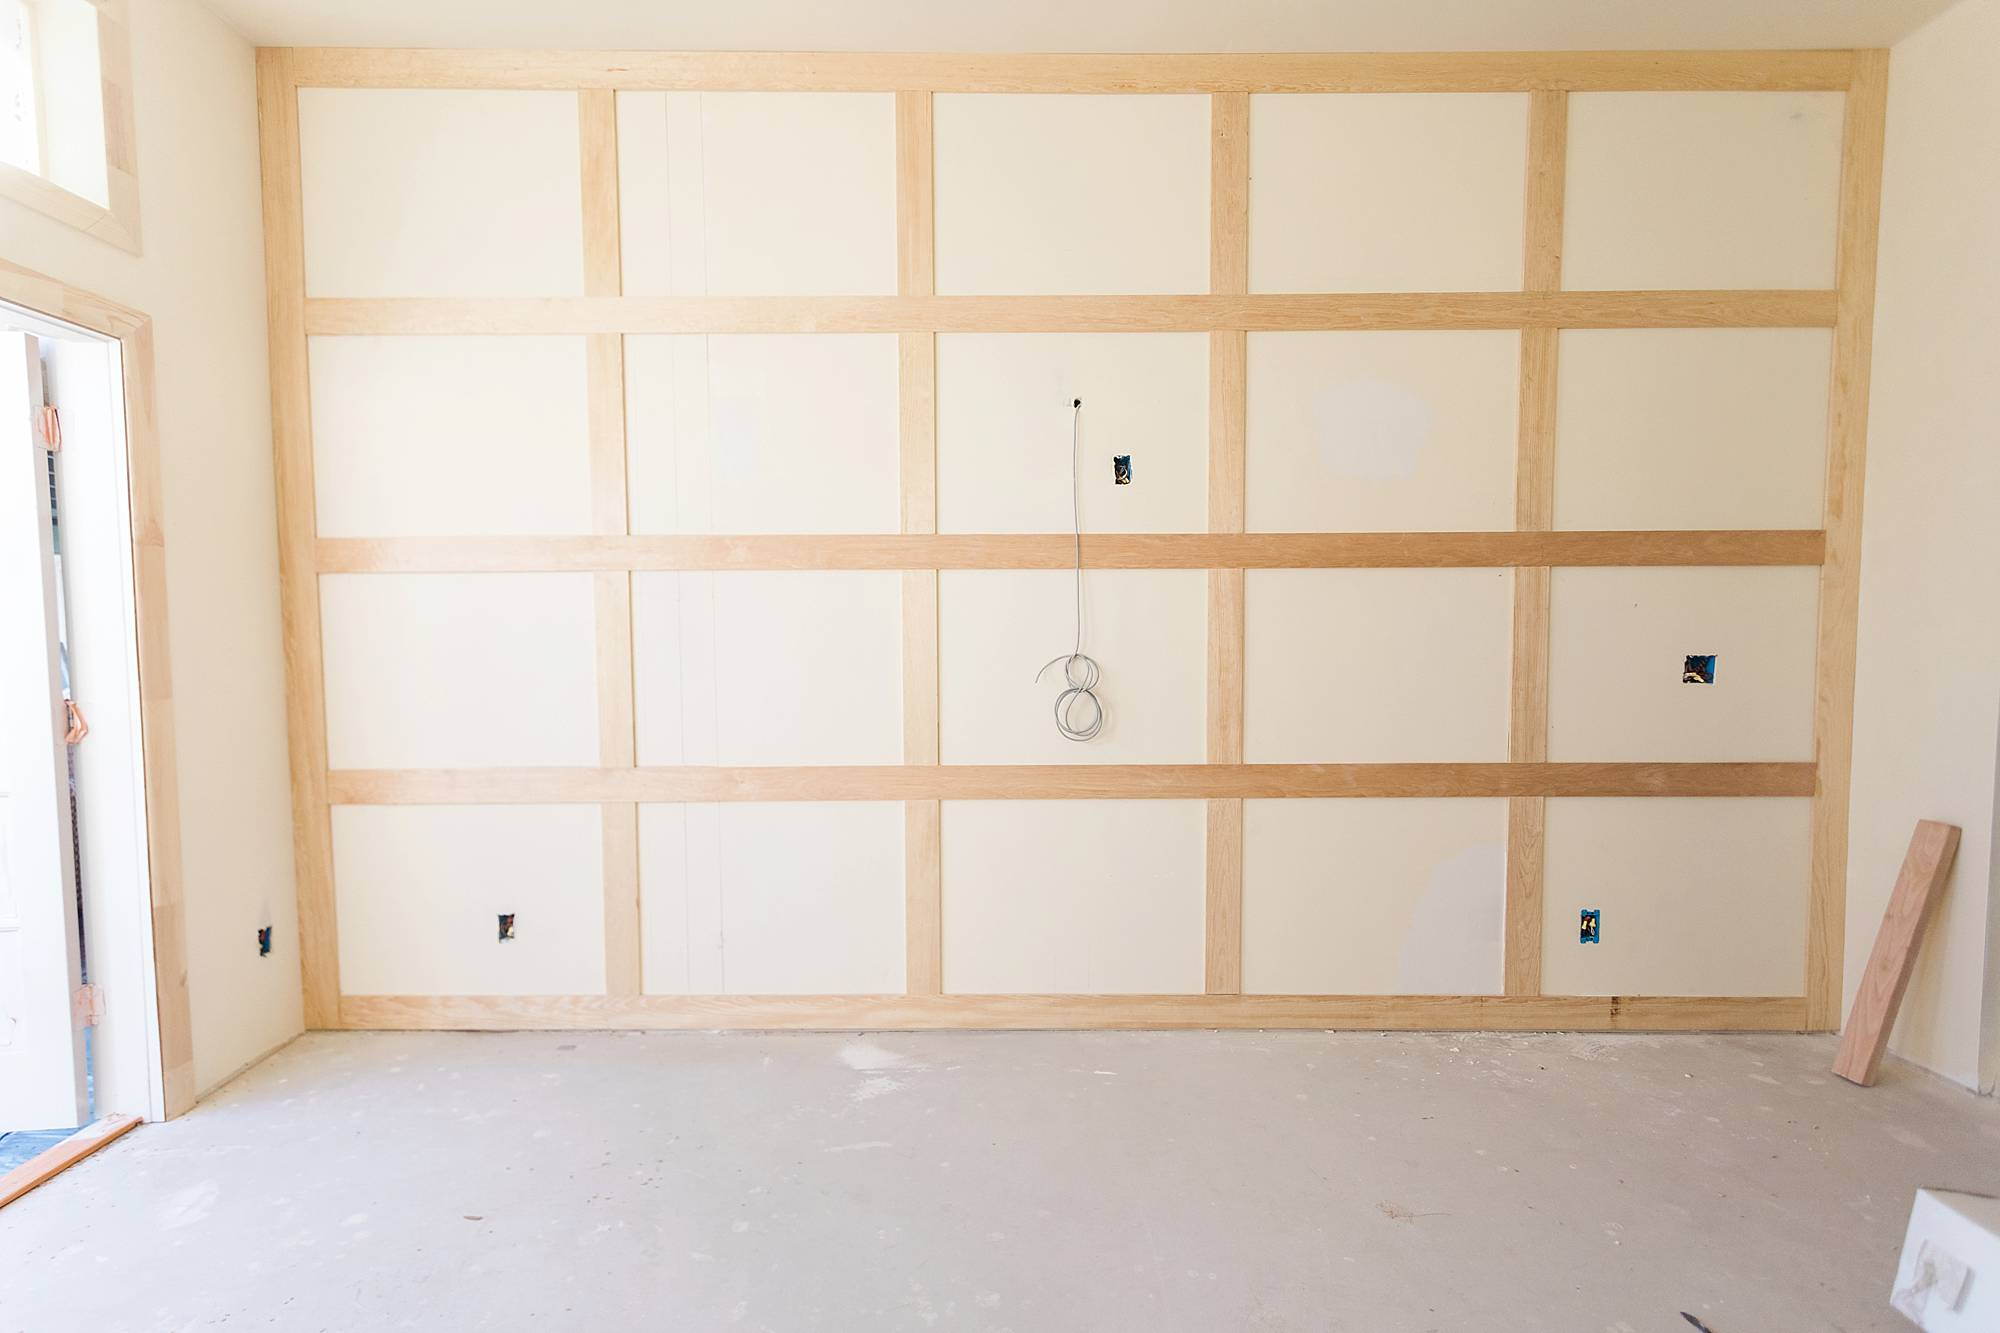 square wall molding trim work wainscoting